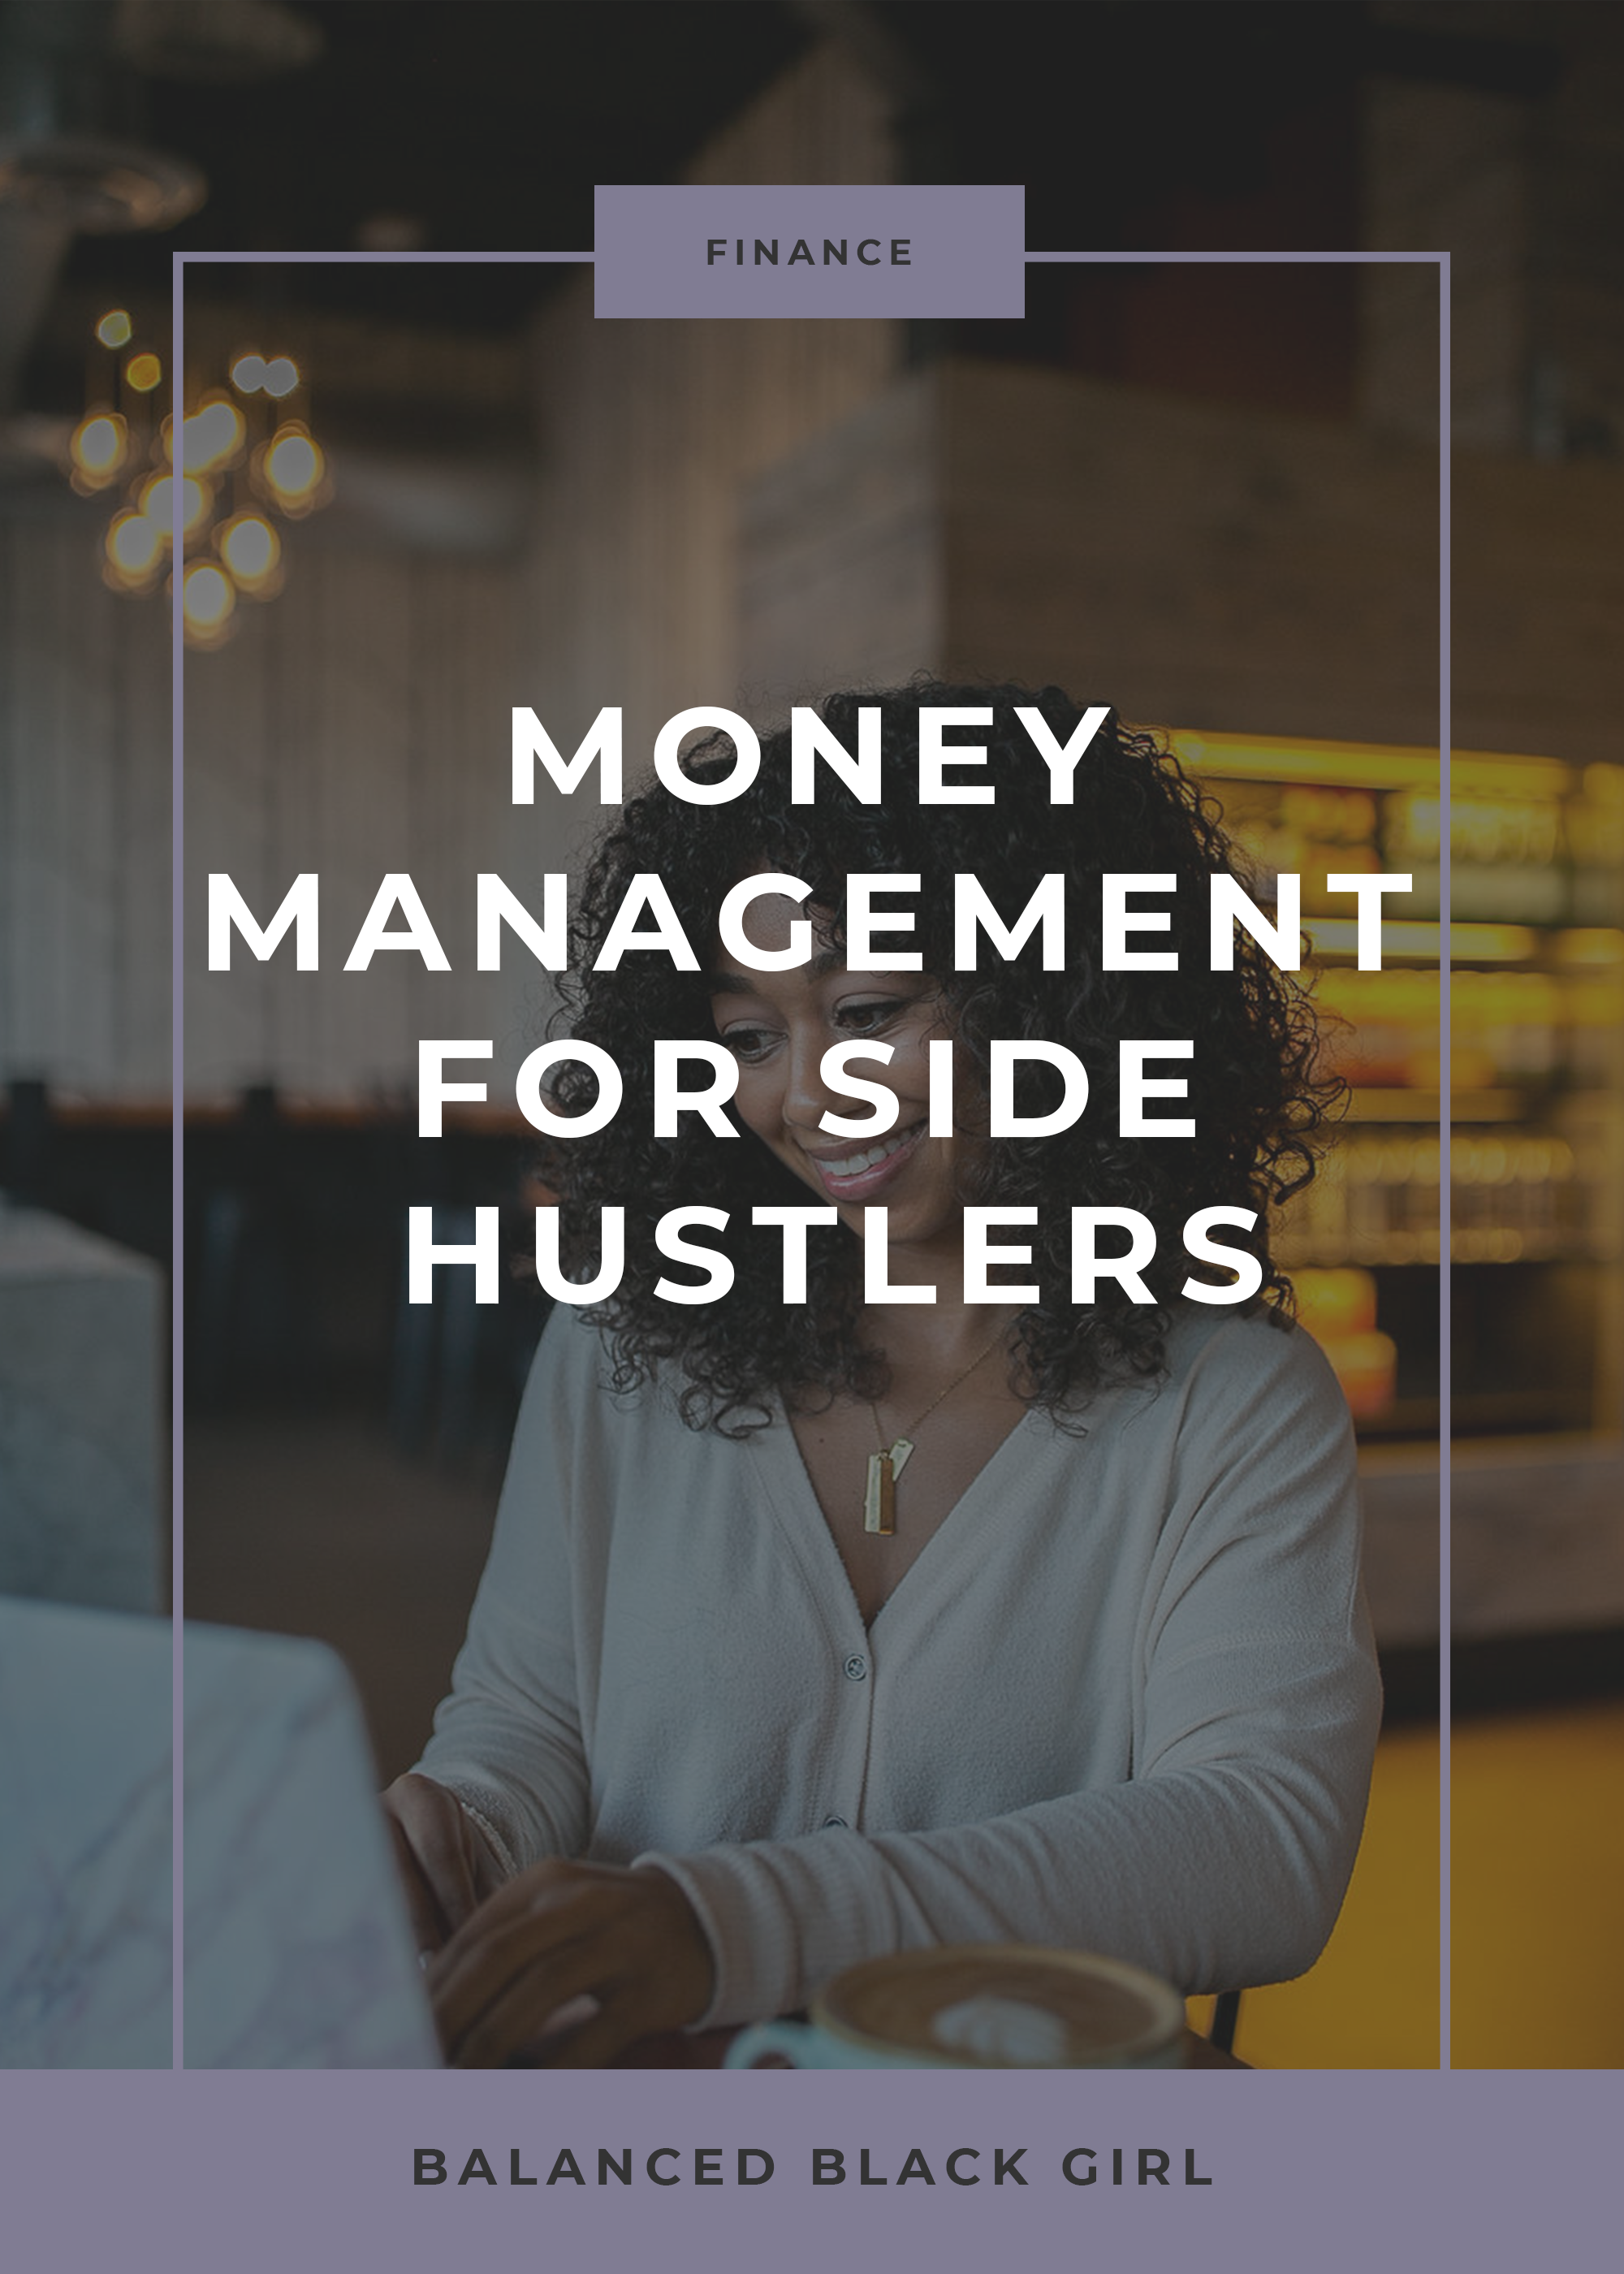 Get your side hustle finances in order with these helpful tips. @BECU #AD #YouAreBECU